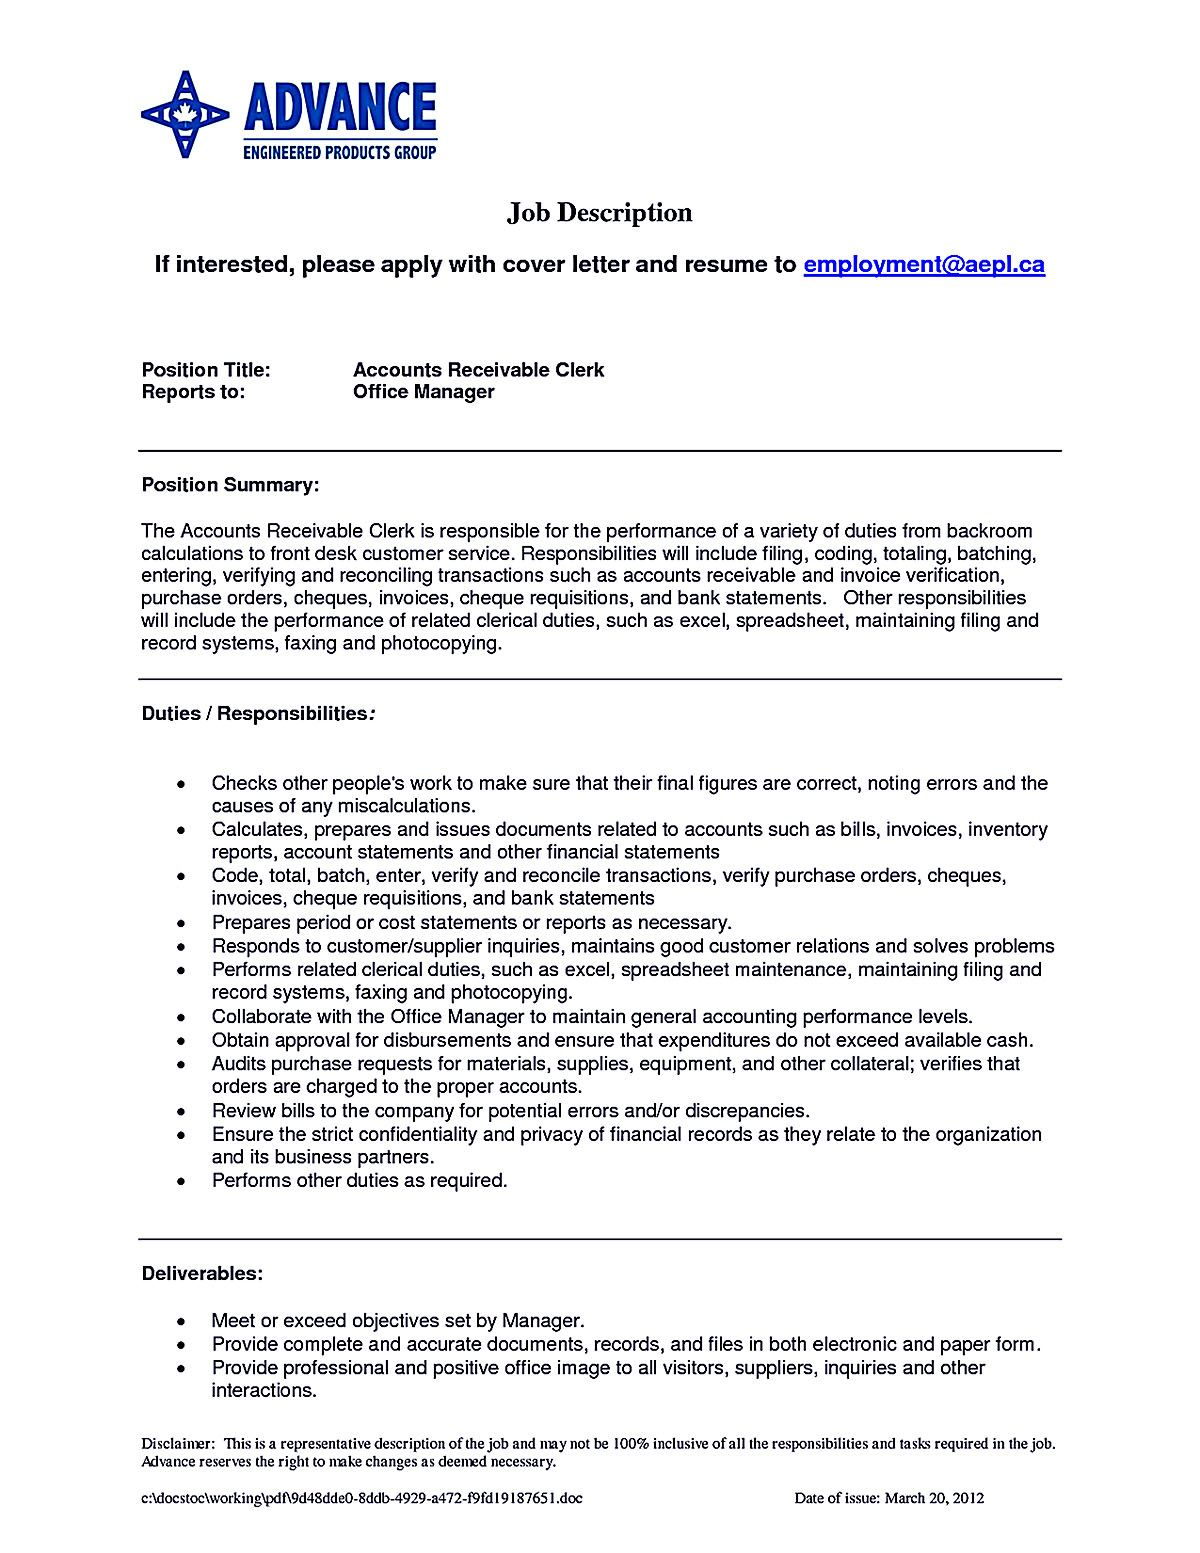 Account receivable resume shows both technical and interpersonal accounts receivable job description sample accounts receivable resume presents both skills and also the madrichimfo Choice Image